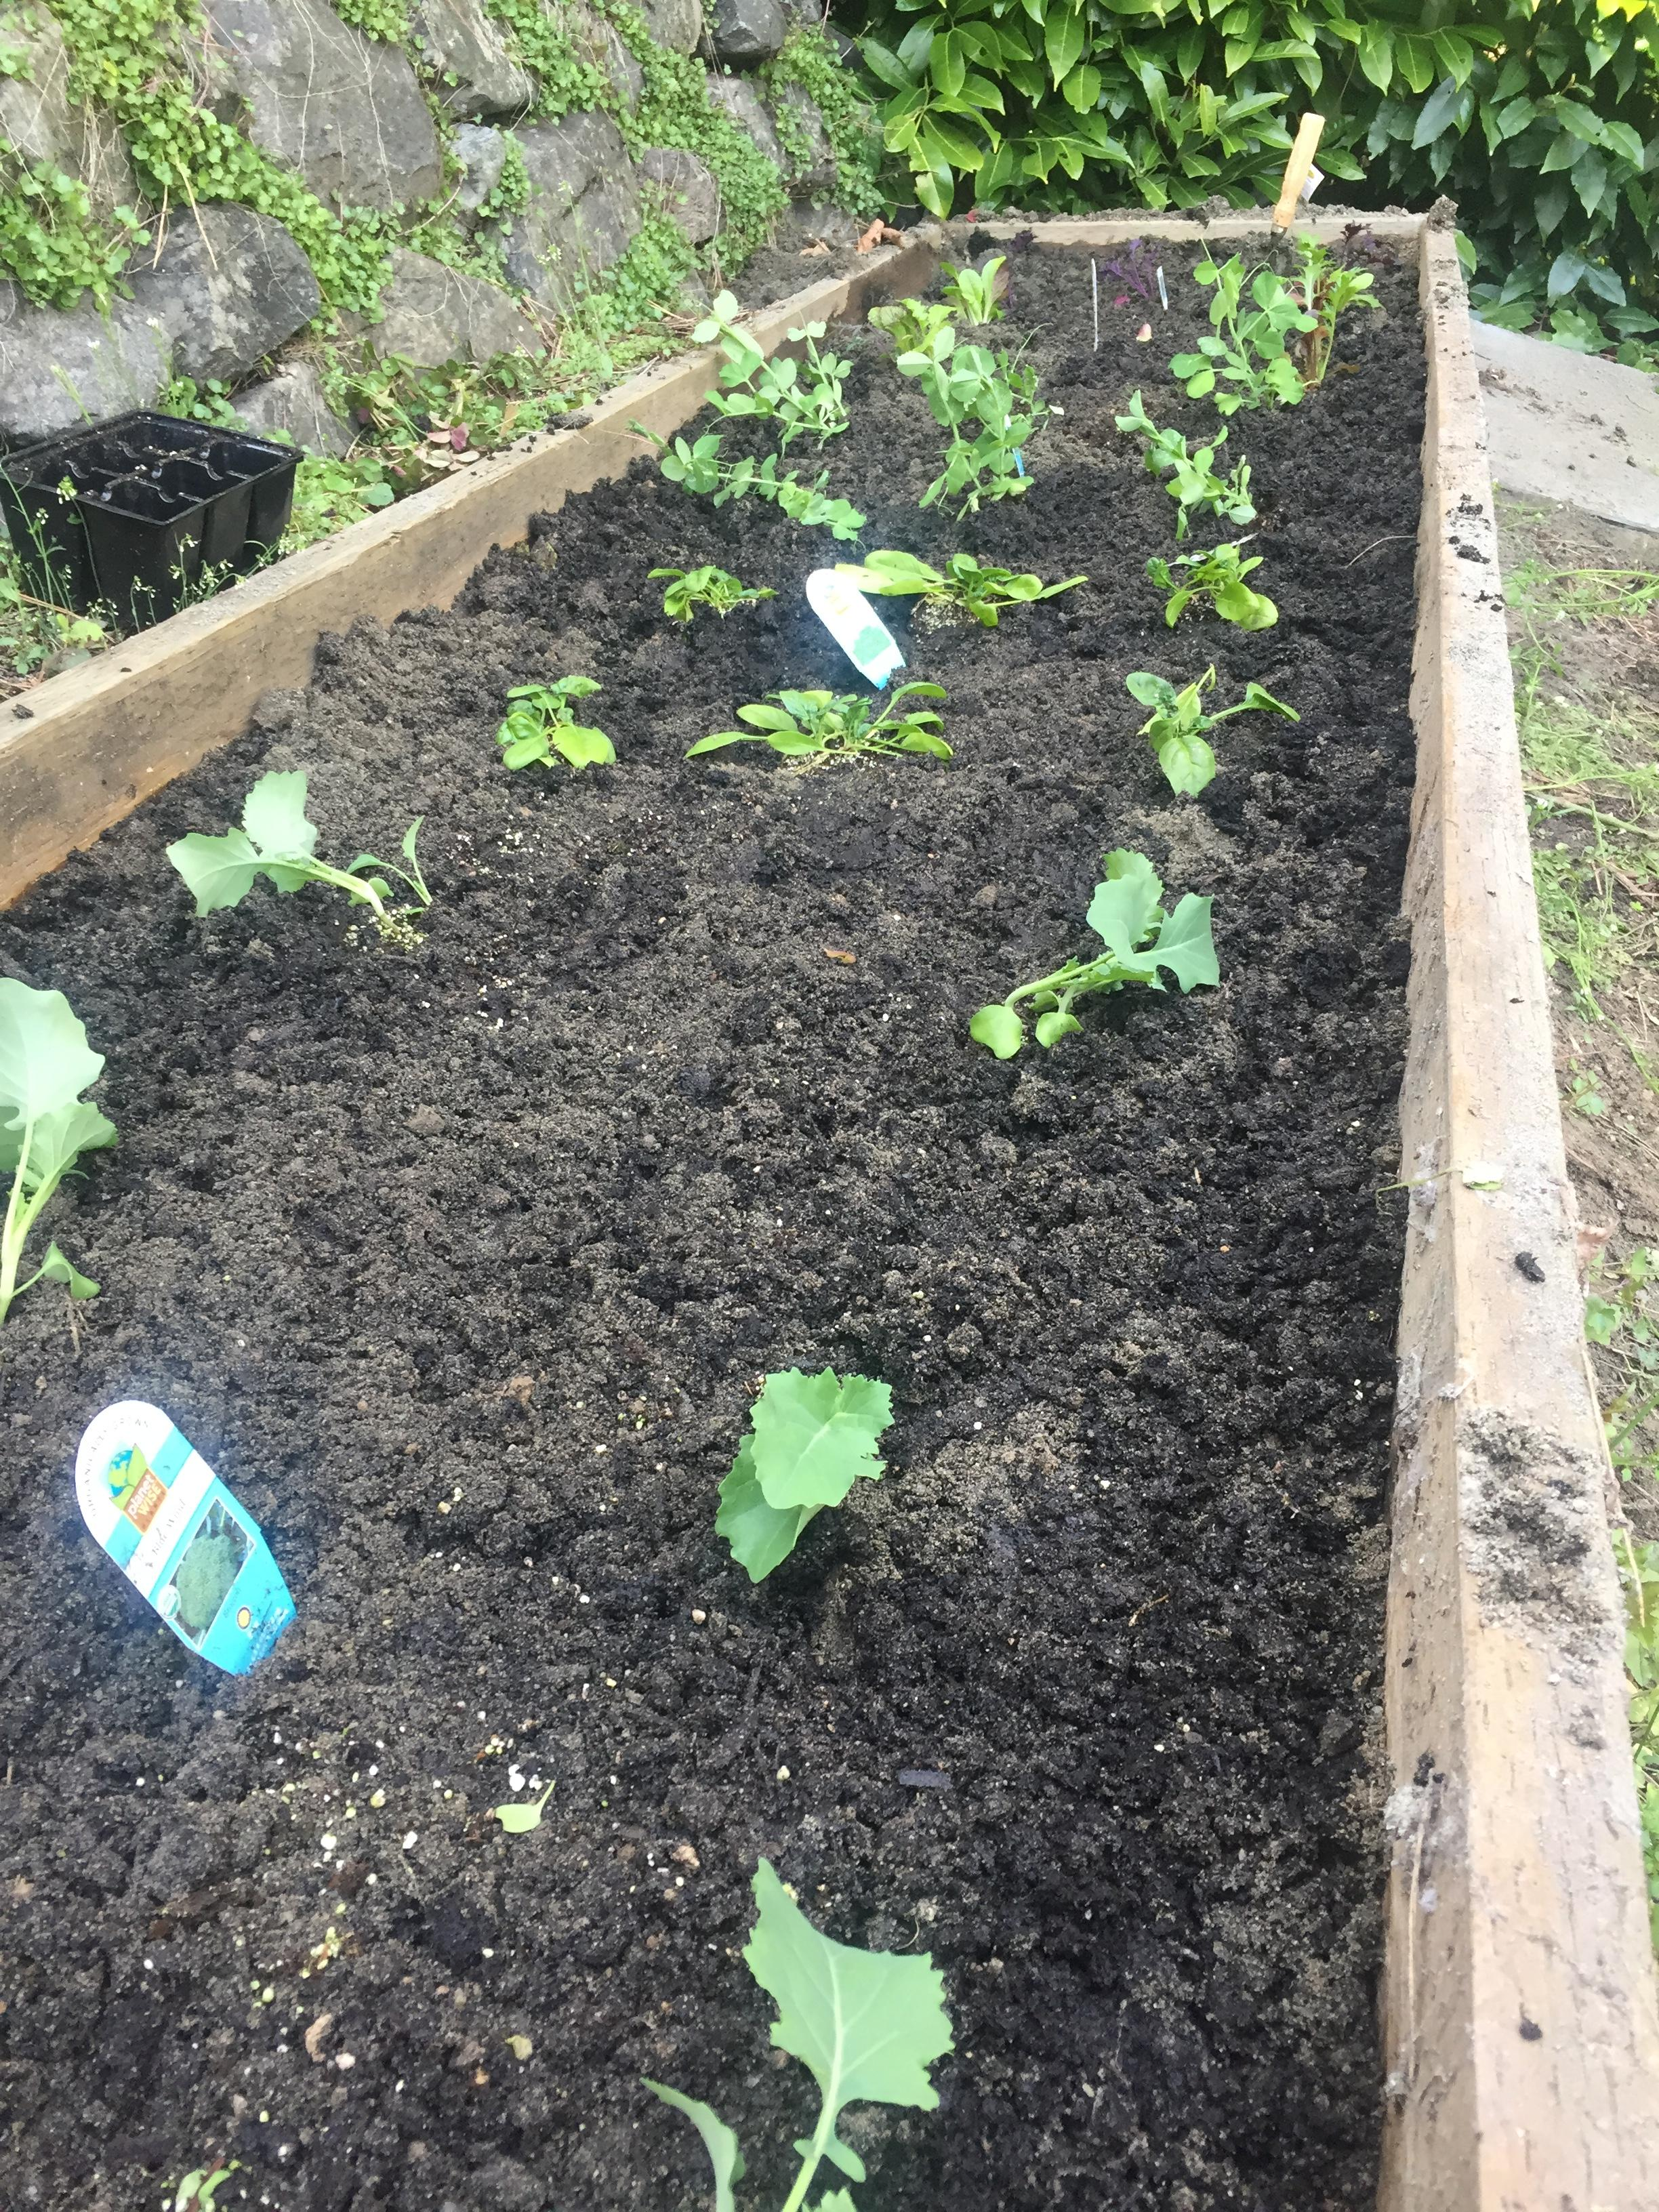 After planting all the veggies we got at the nursery. Good news- the little ID tag tells you how far apart each plant needs to be. (Image: Susan Galbraith)